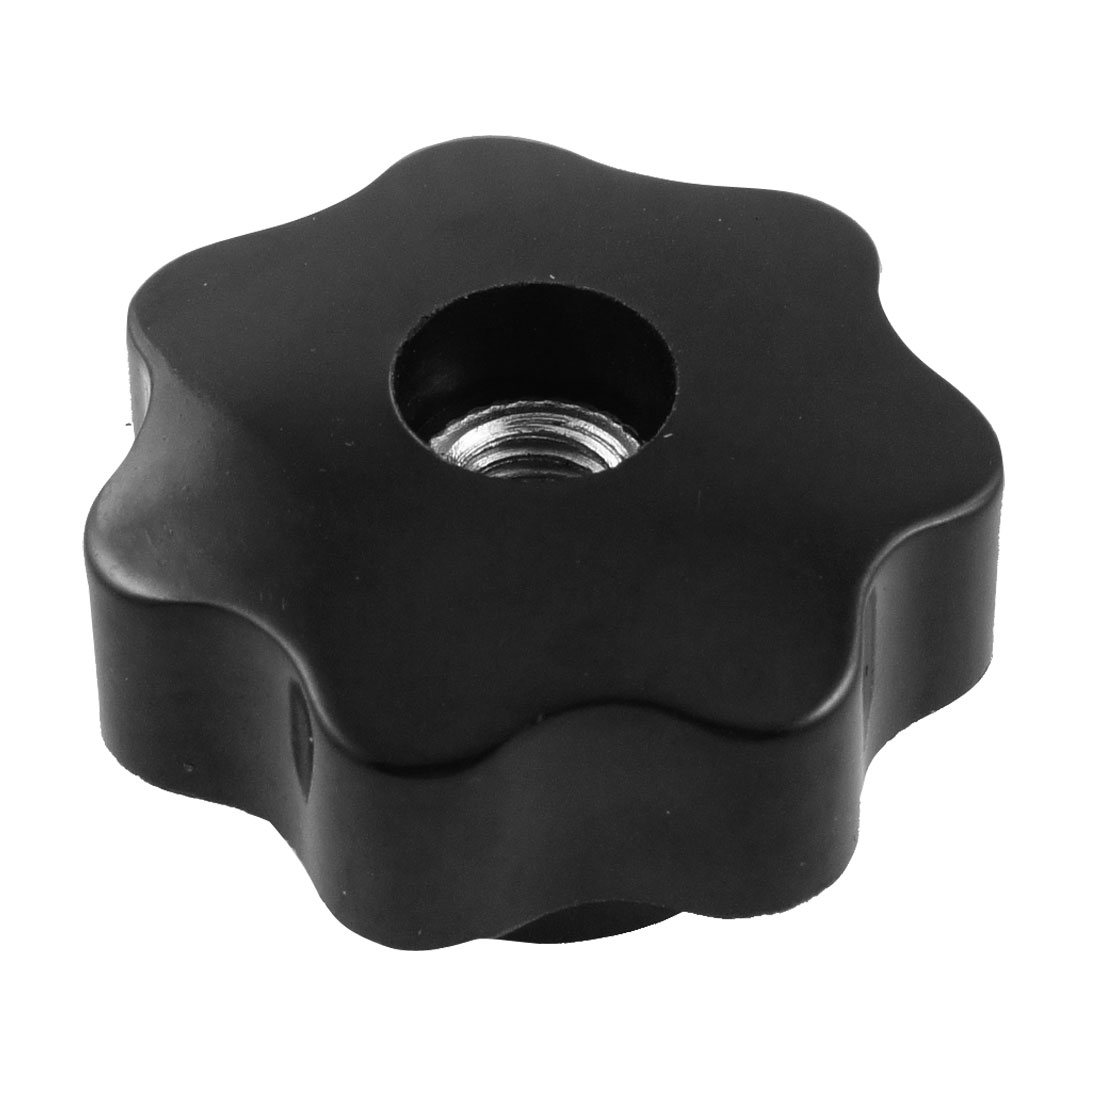 7mm Diameter Thread Hole Black Star Head Clamping Knob Replacement